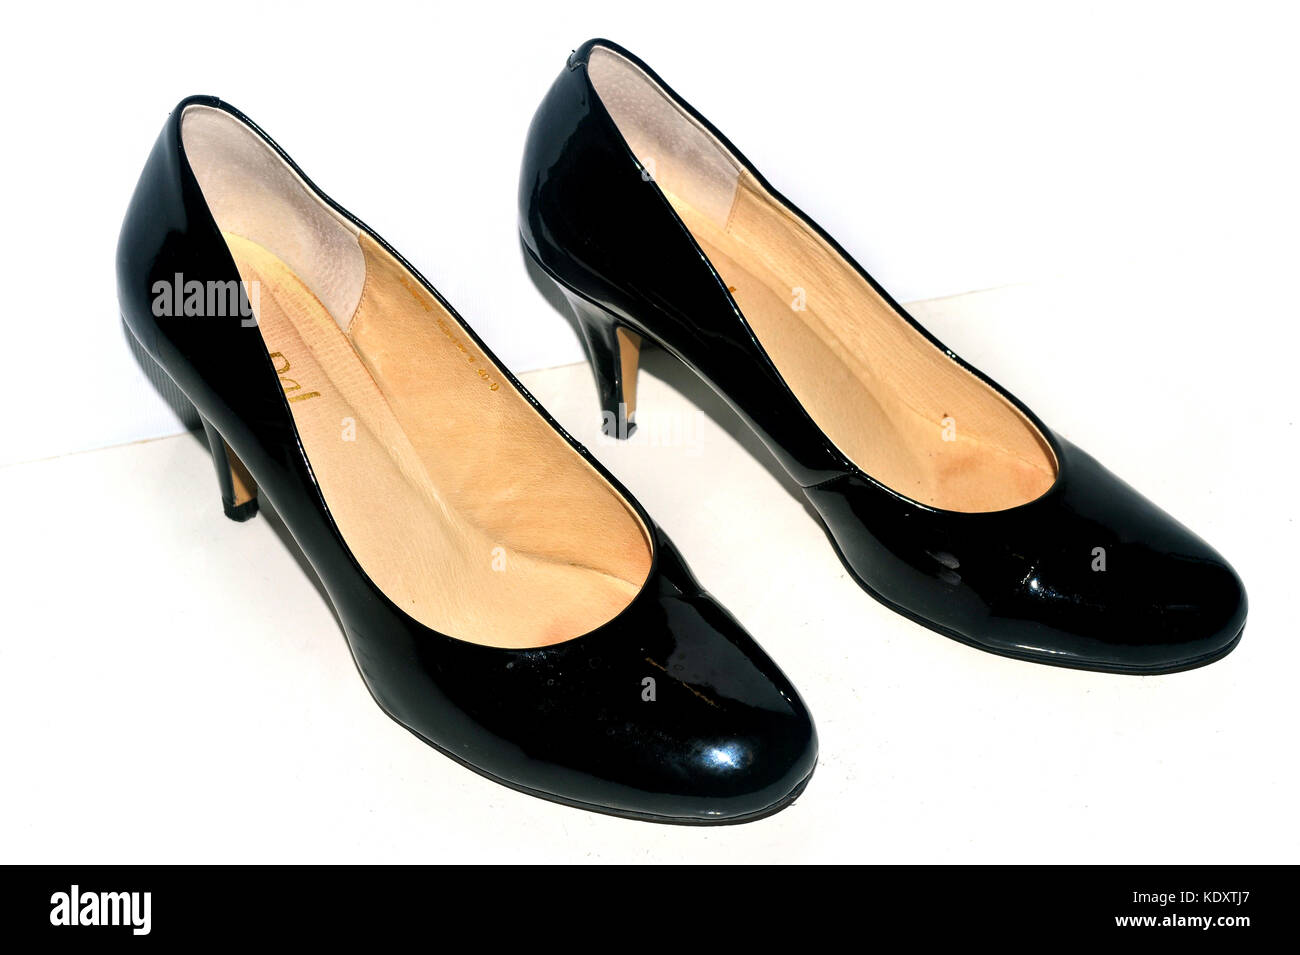 d17605435642 Ladies patent leather black shoes photographed against a white background -  Stock Image